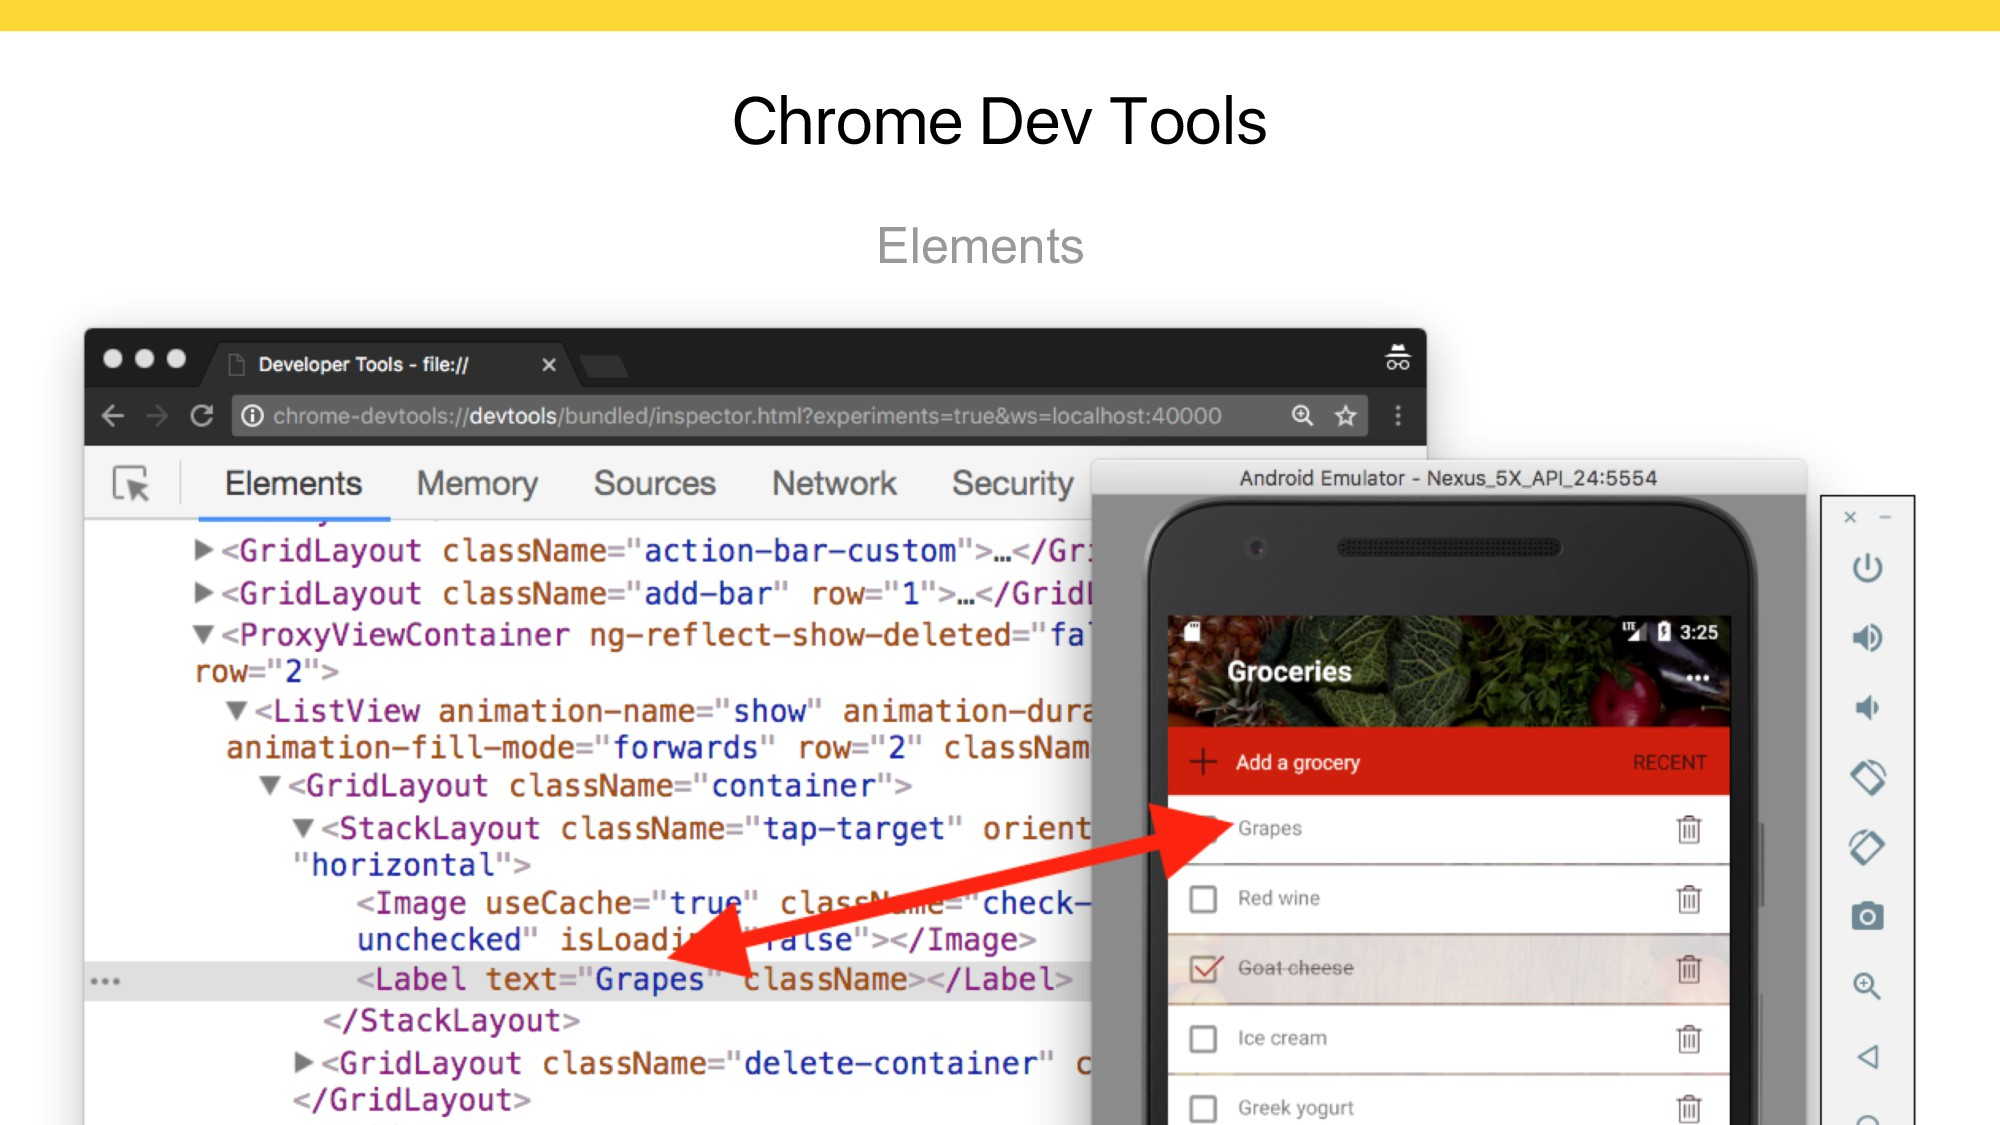 Chrome Dev Tools Elements